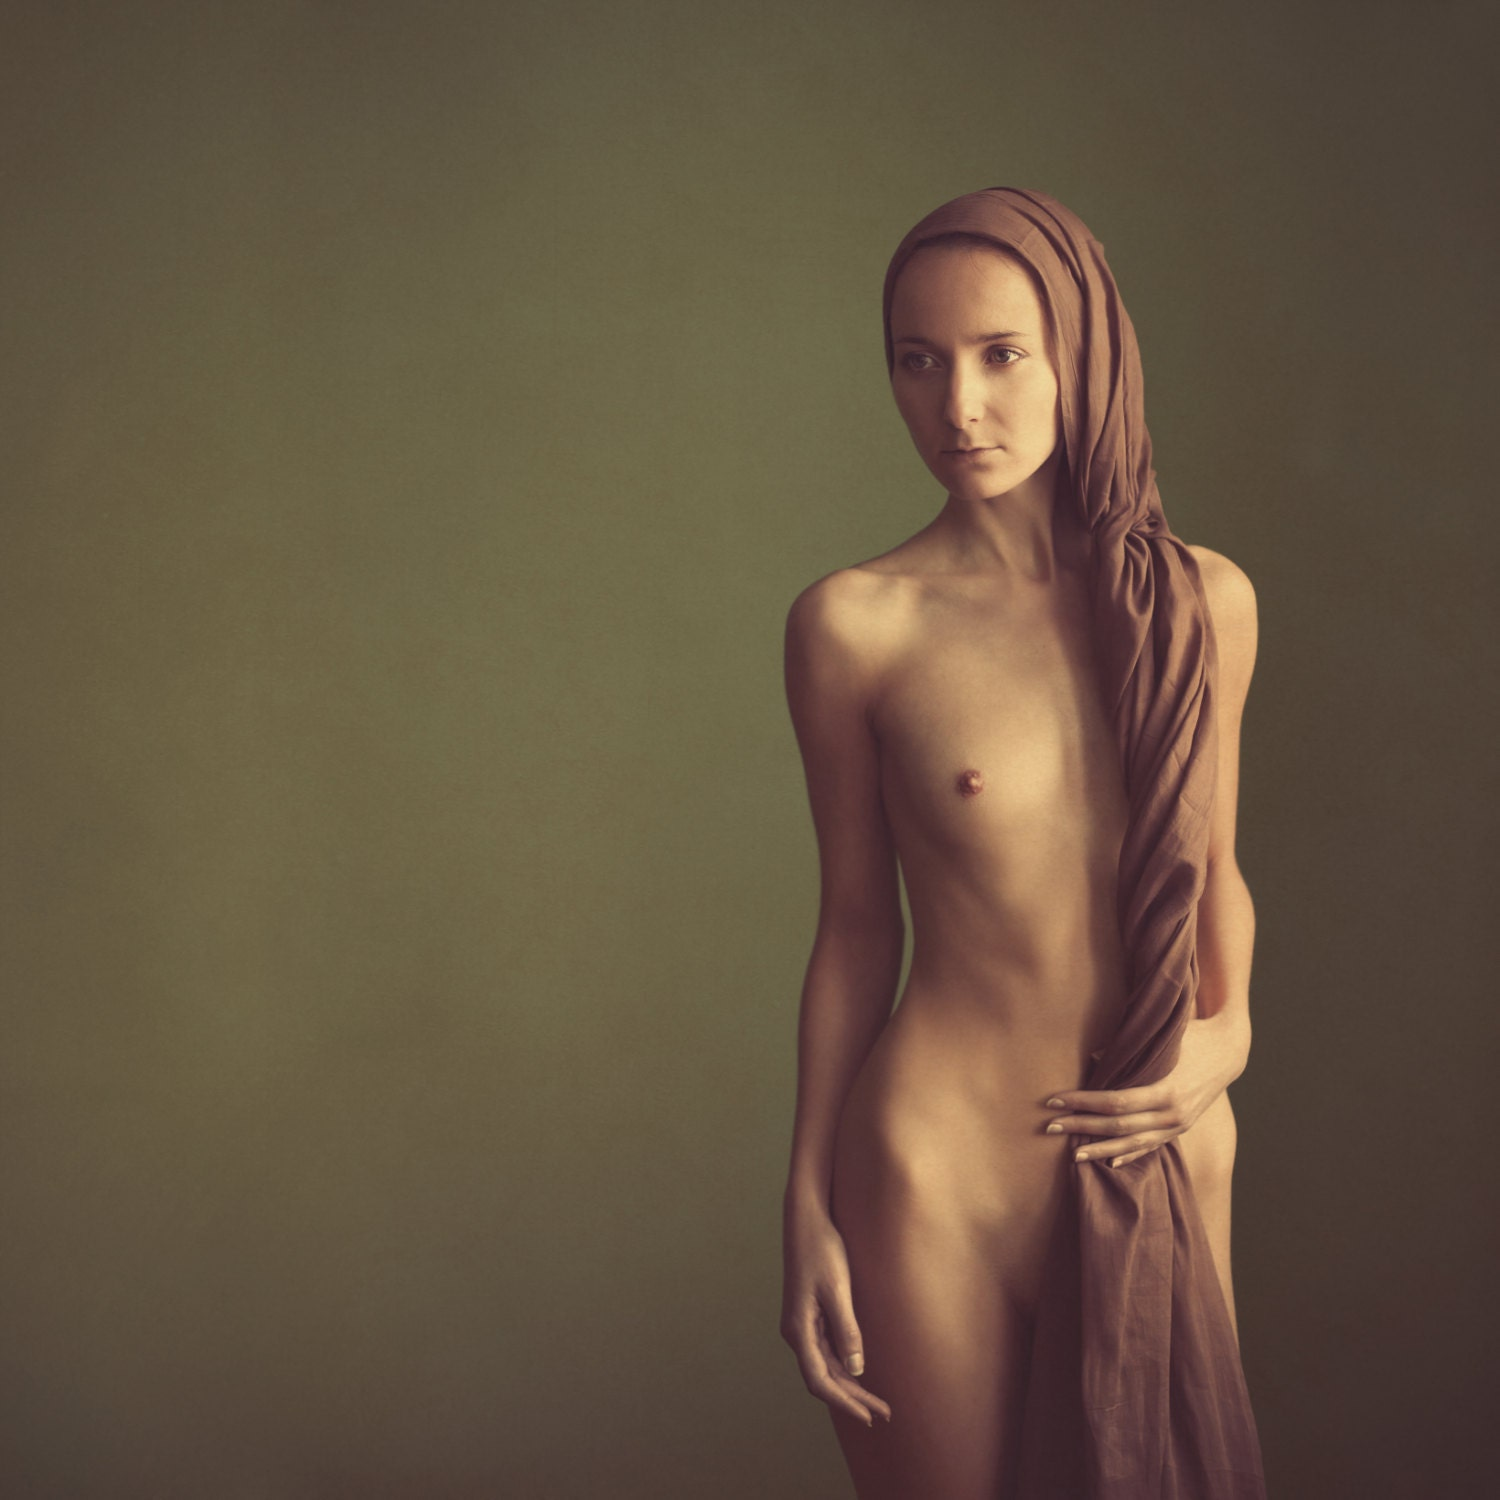 Teen portraits naked — photo 6